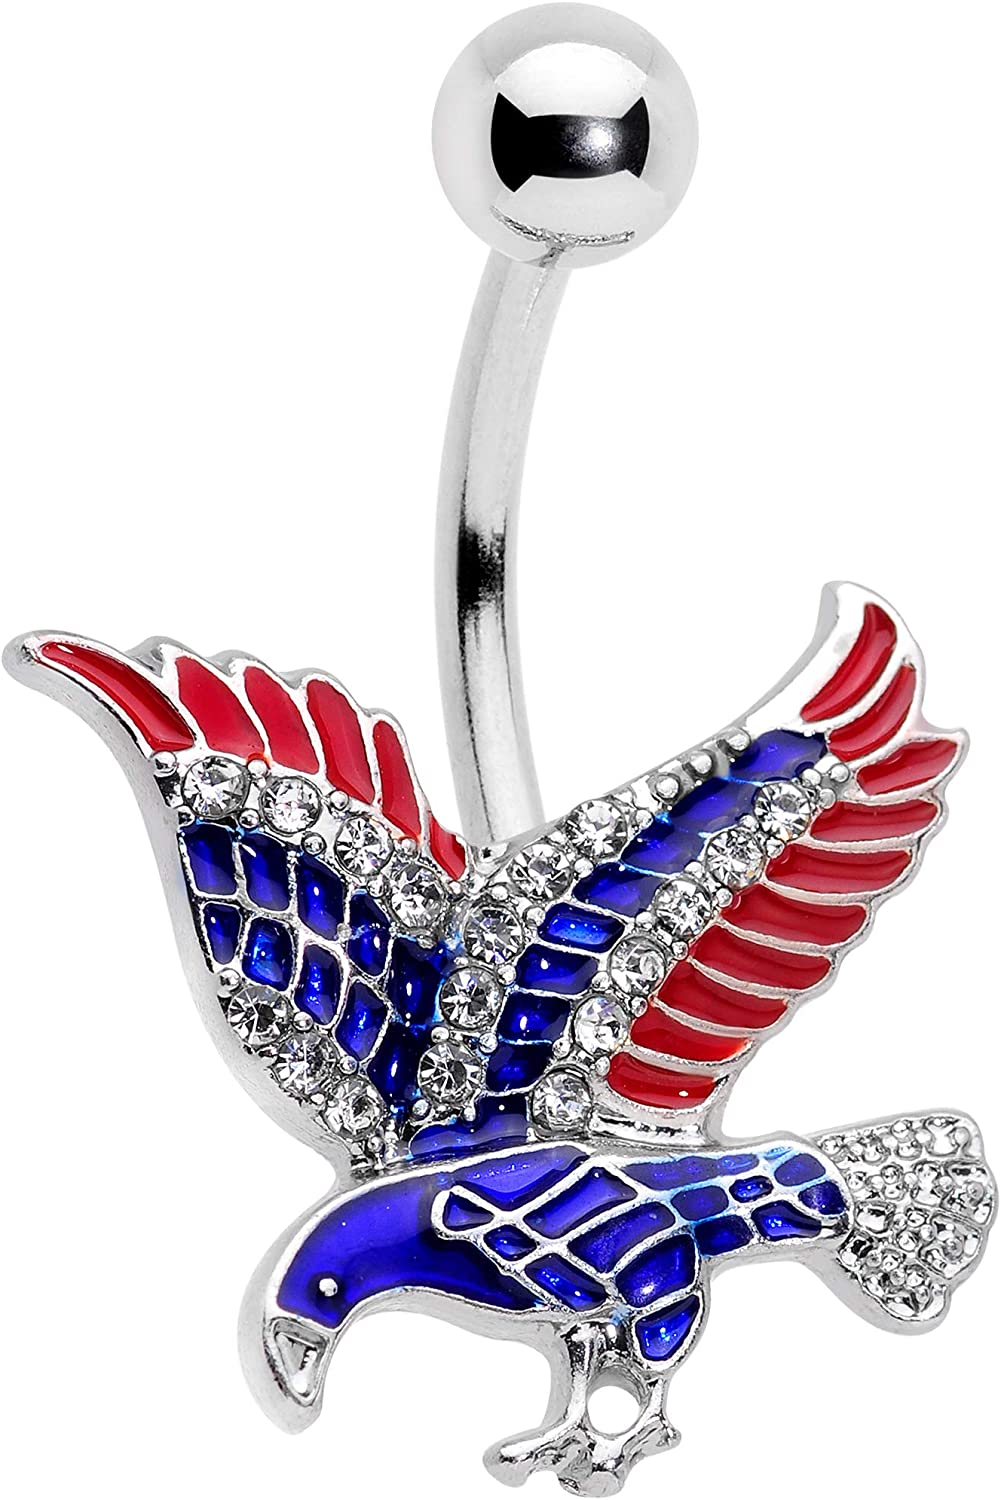 Body Candy 14G 316L Stainless Steel Navel Ring Piercing Red Blue American Eagle USA Belly Button Ring